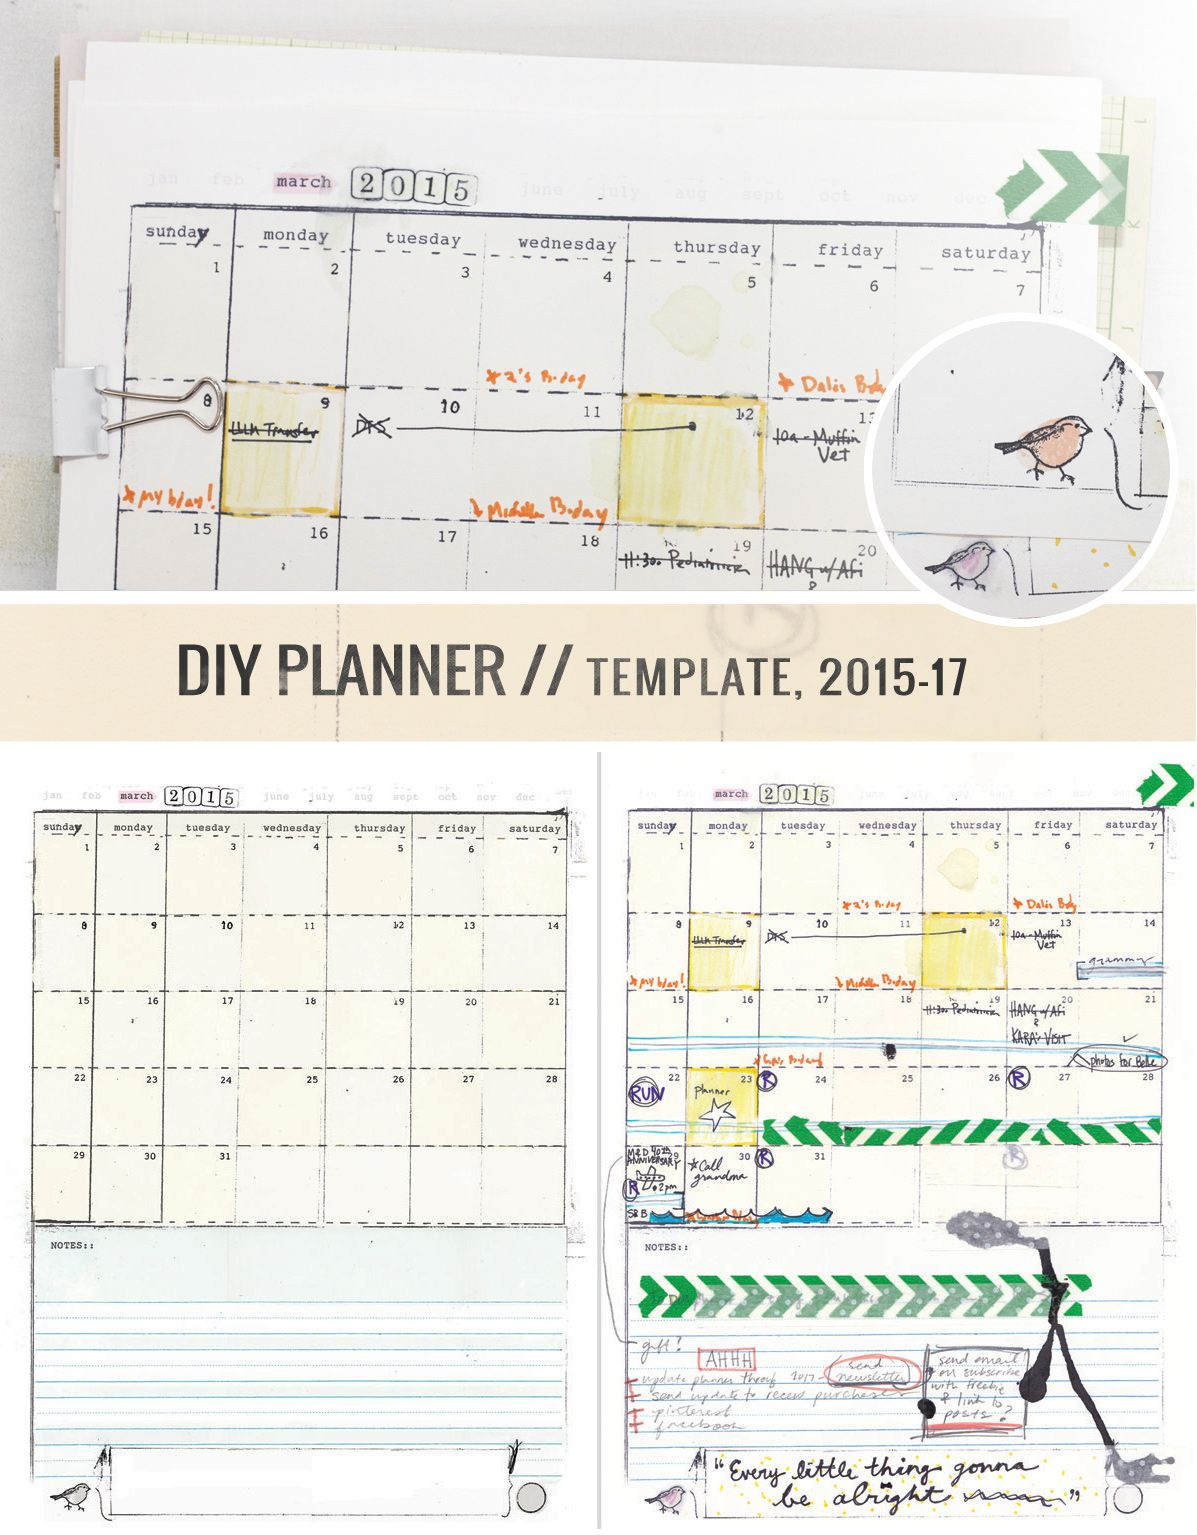 Make Your Own Awesome Planner Yeah Diyplanner Full Of